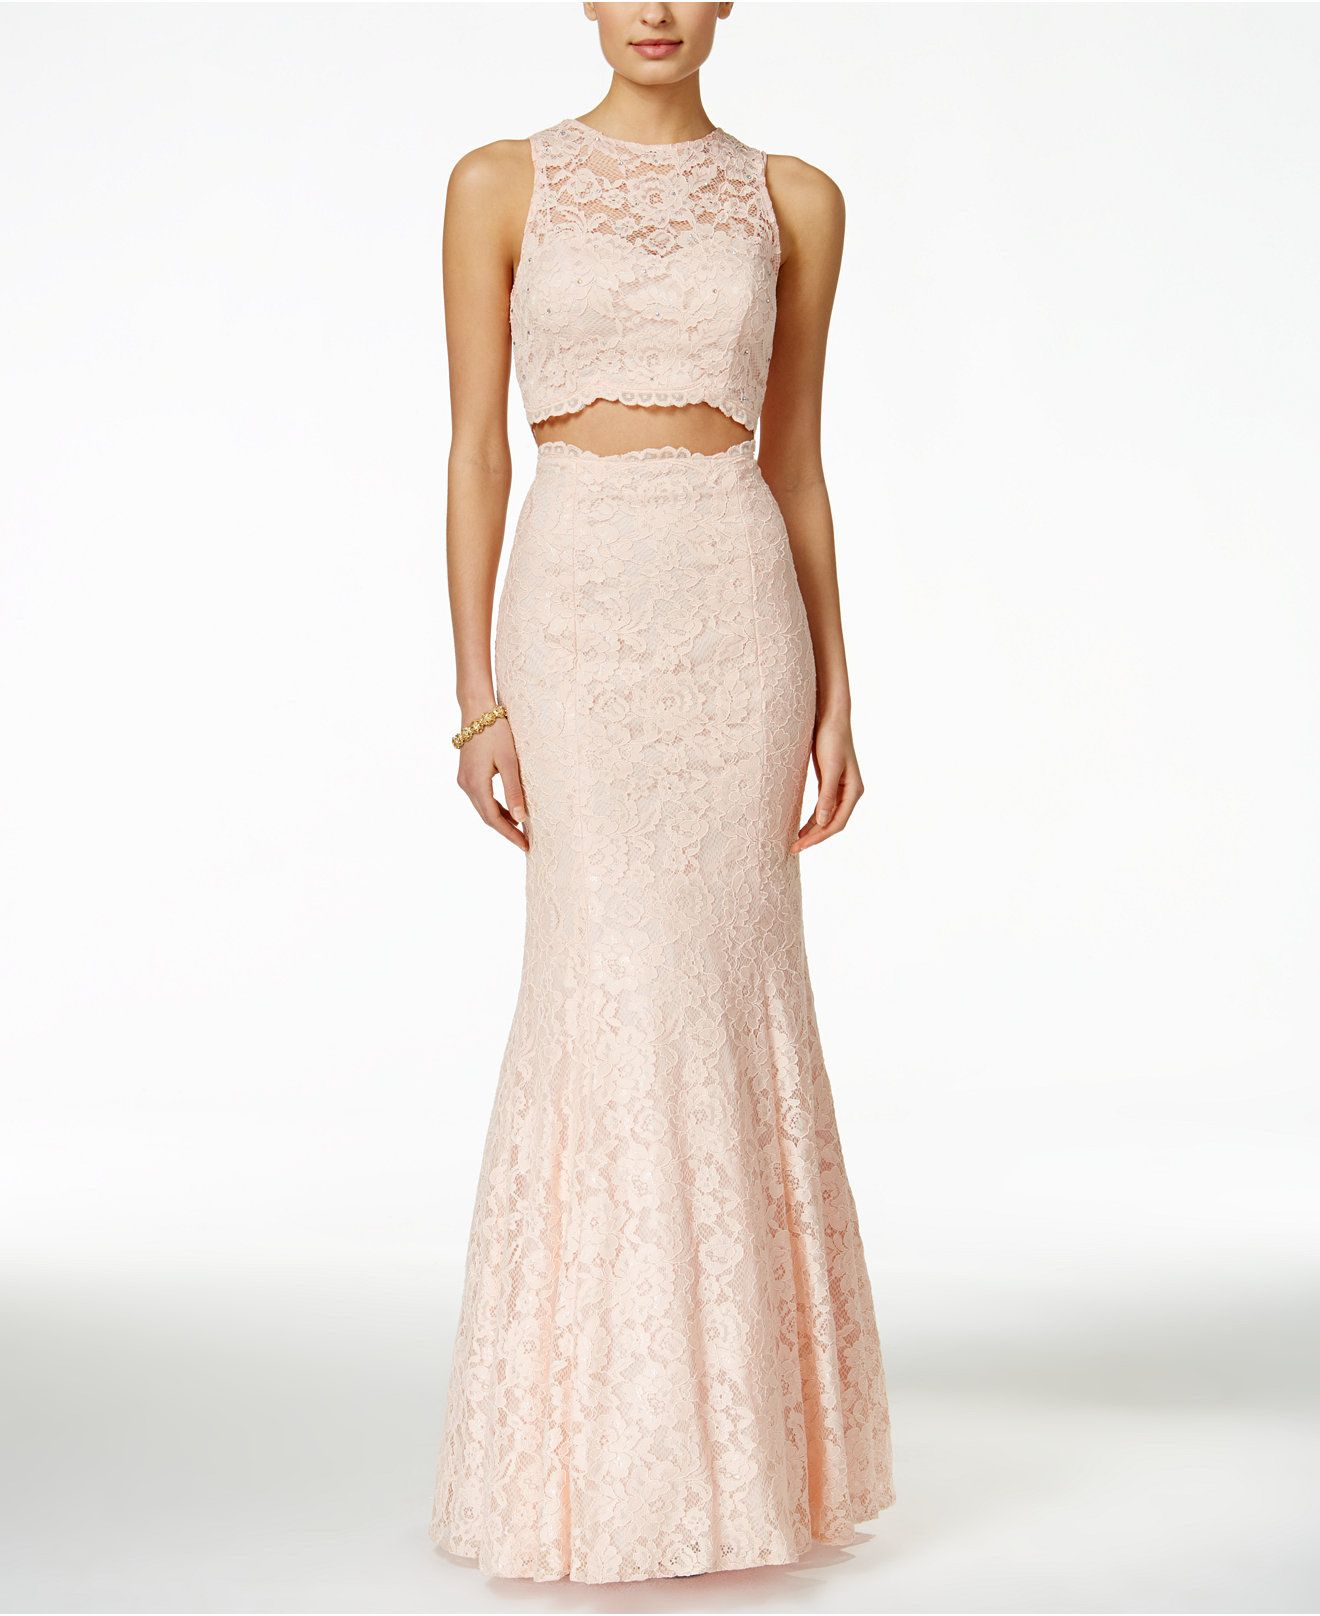 Xscape Embellished Lace Two-Piece Mermaid Gown - Dresses ...